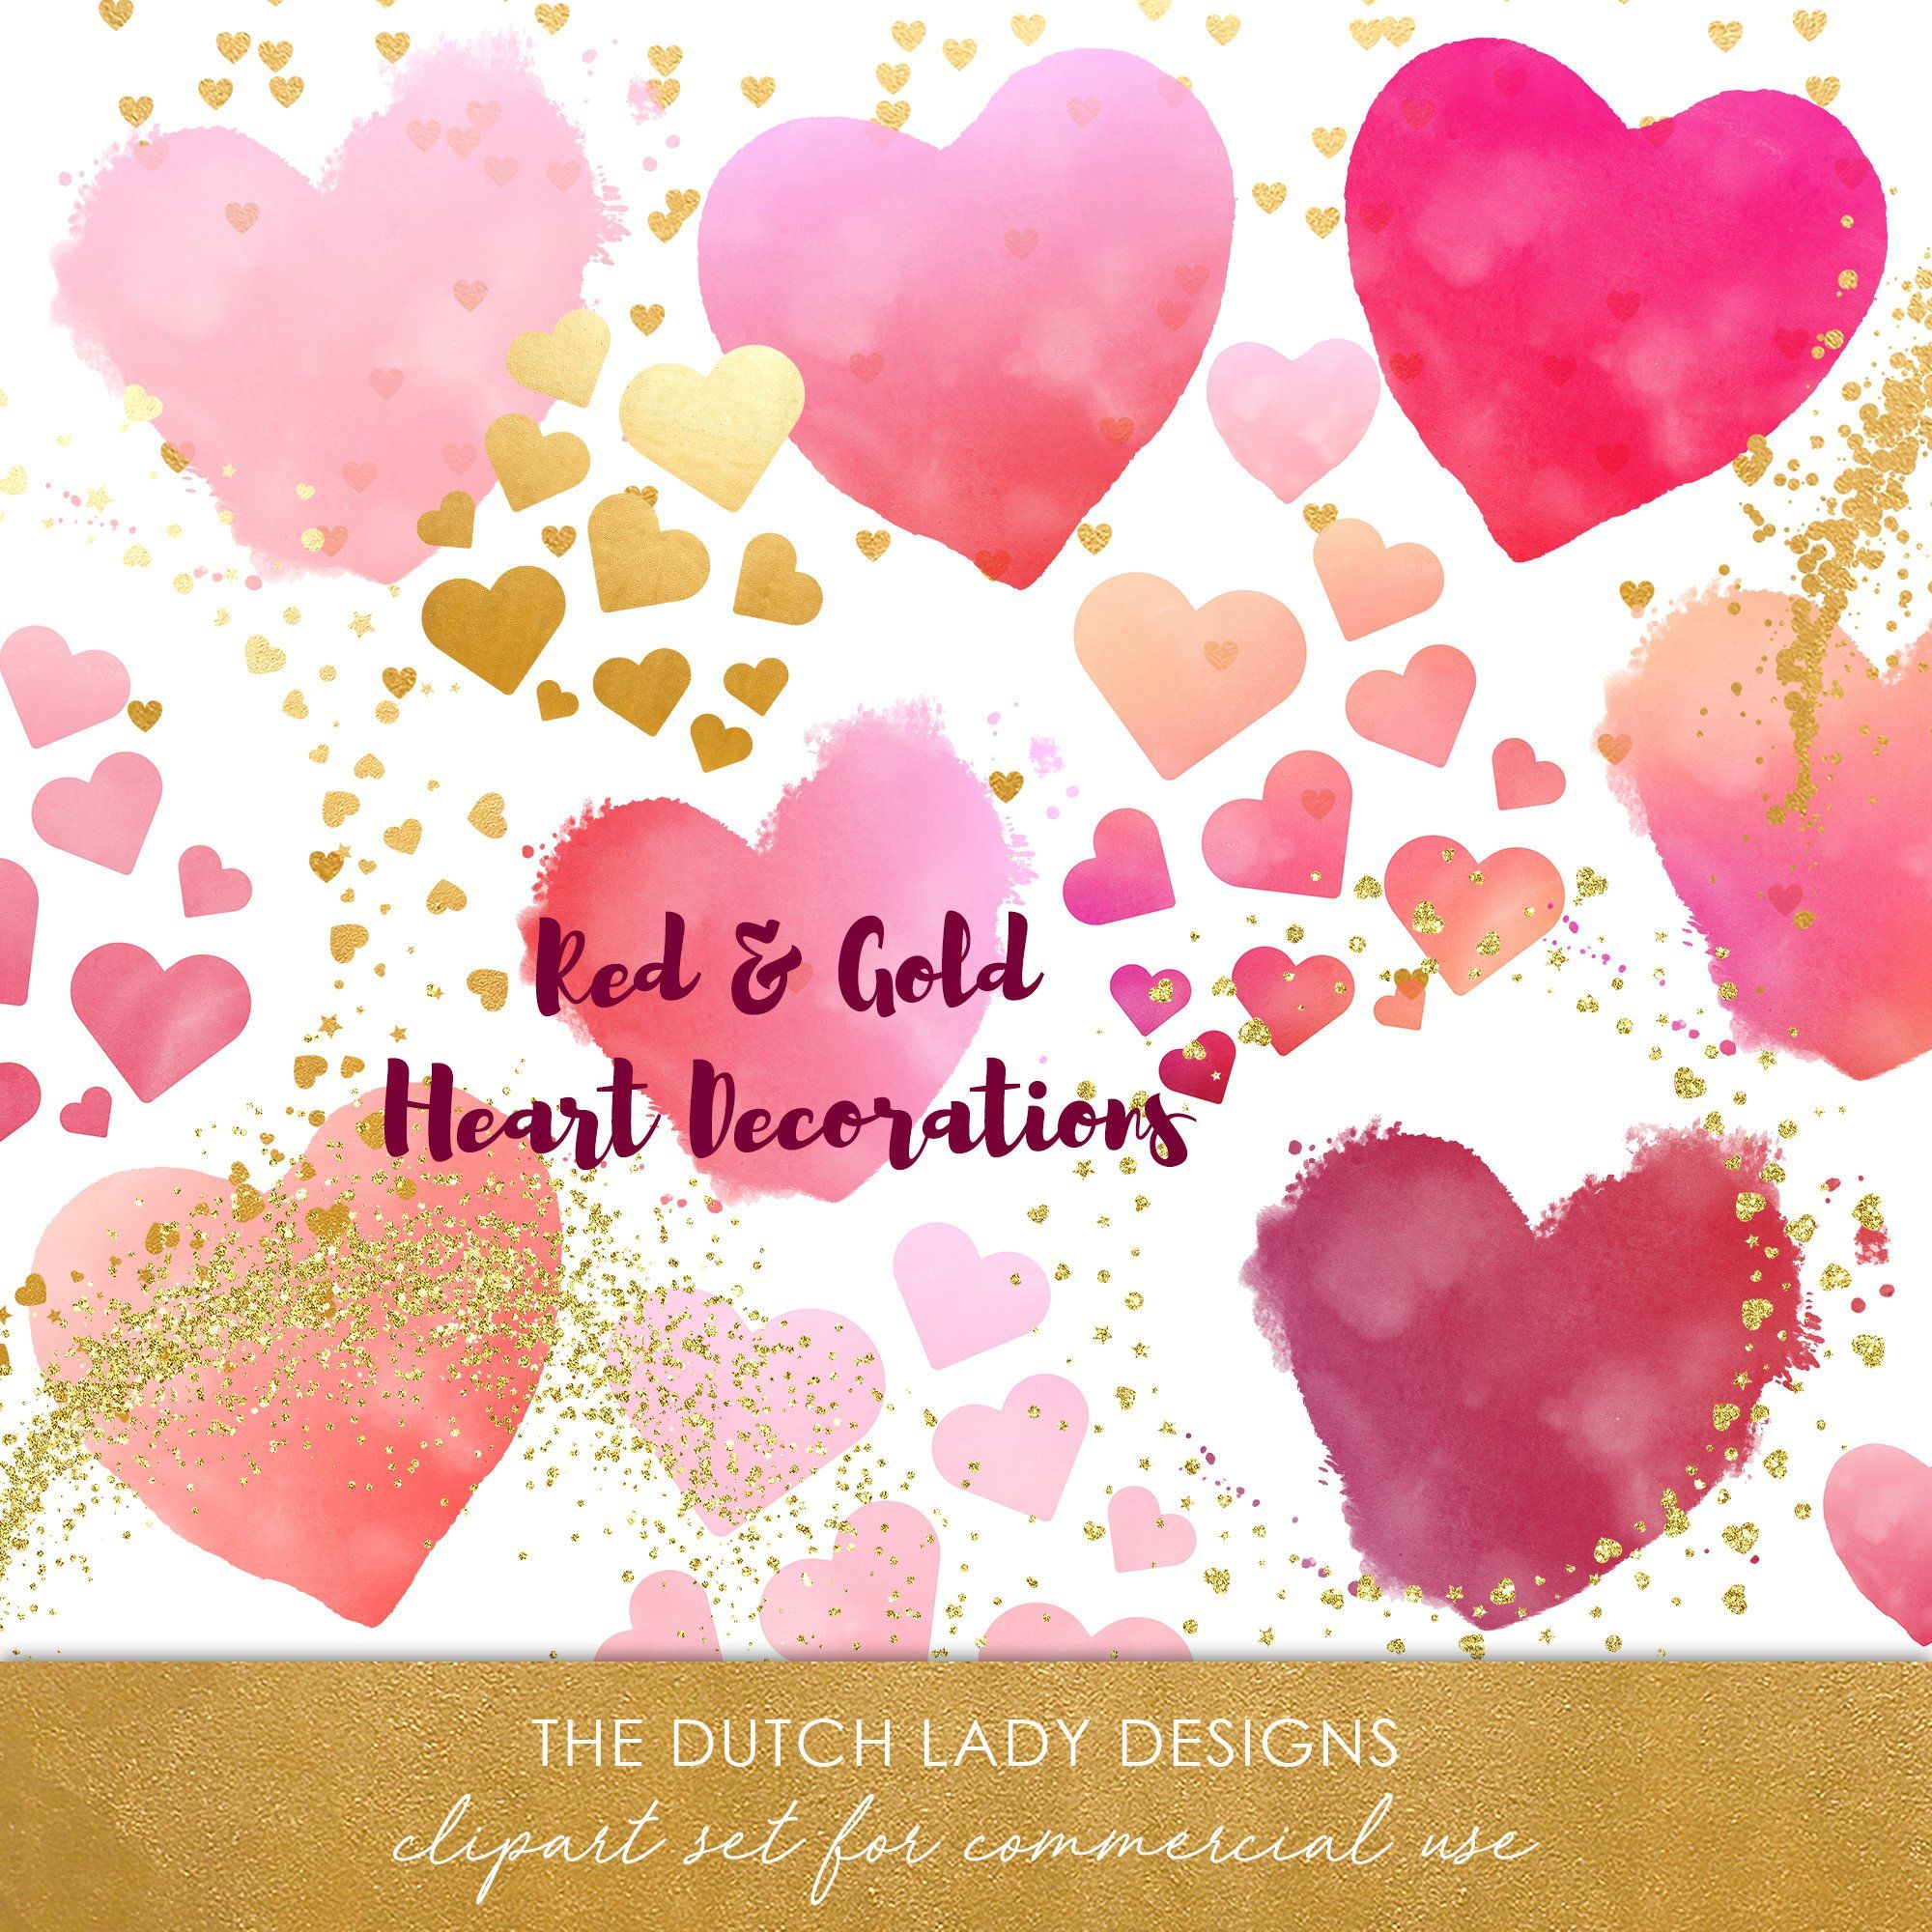 small resolution of heart clipart valentine clipart love clipart wedding clipart playful hearts watercolor hearts golden decoration digital decoration golden sprinkles